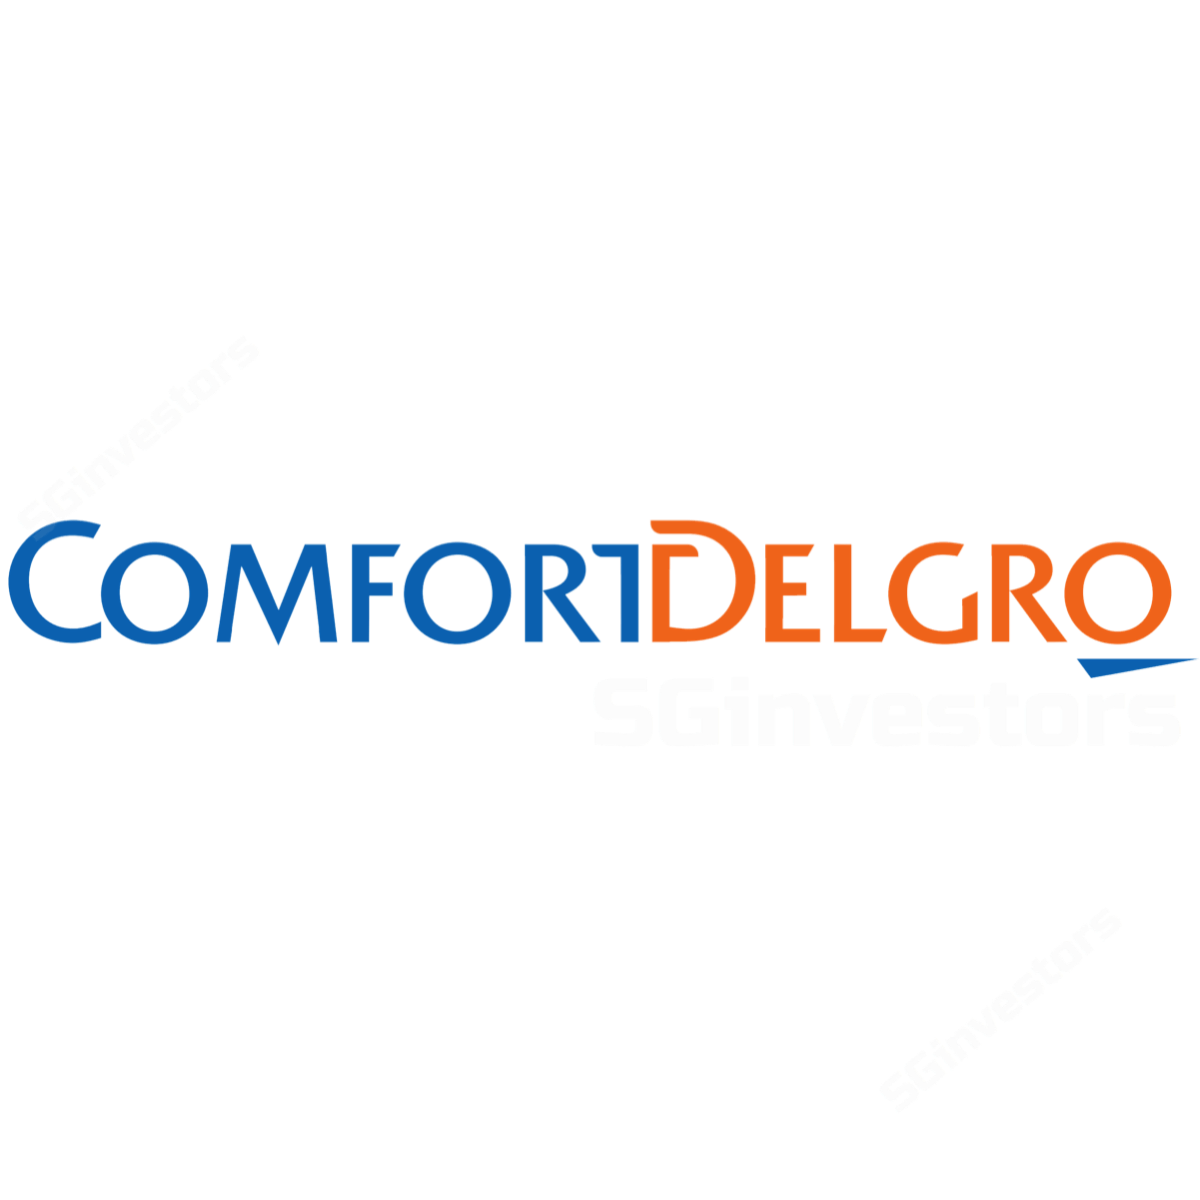 ComfortDelGro - CGS-CIMB Research 2018-08-10: Powered Up By Acquisition Spree